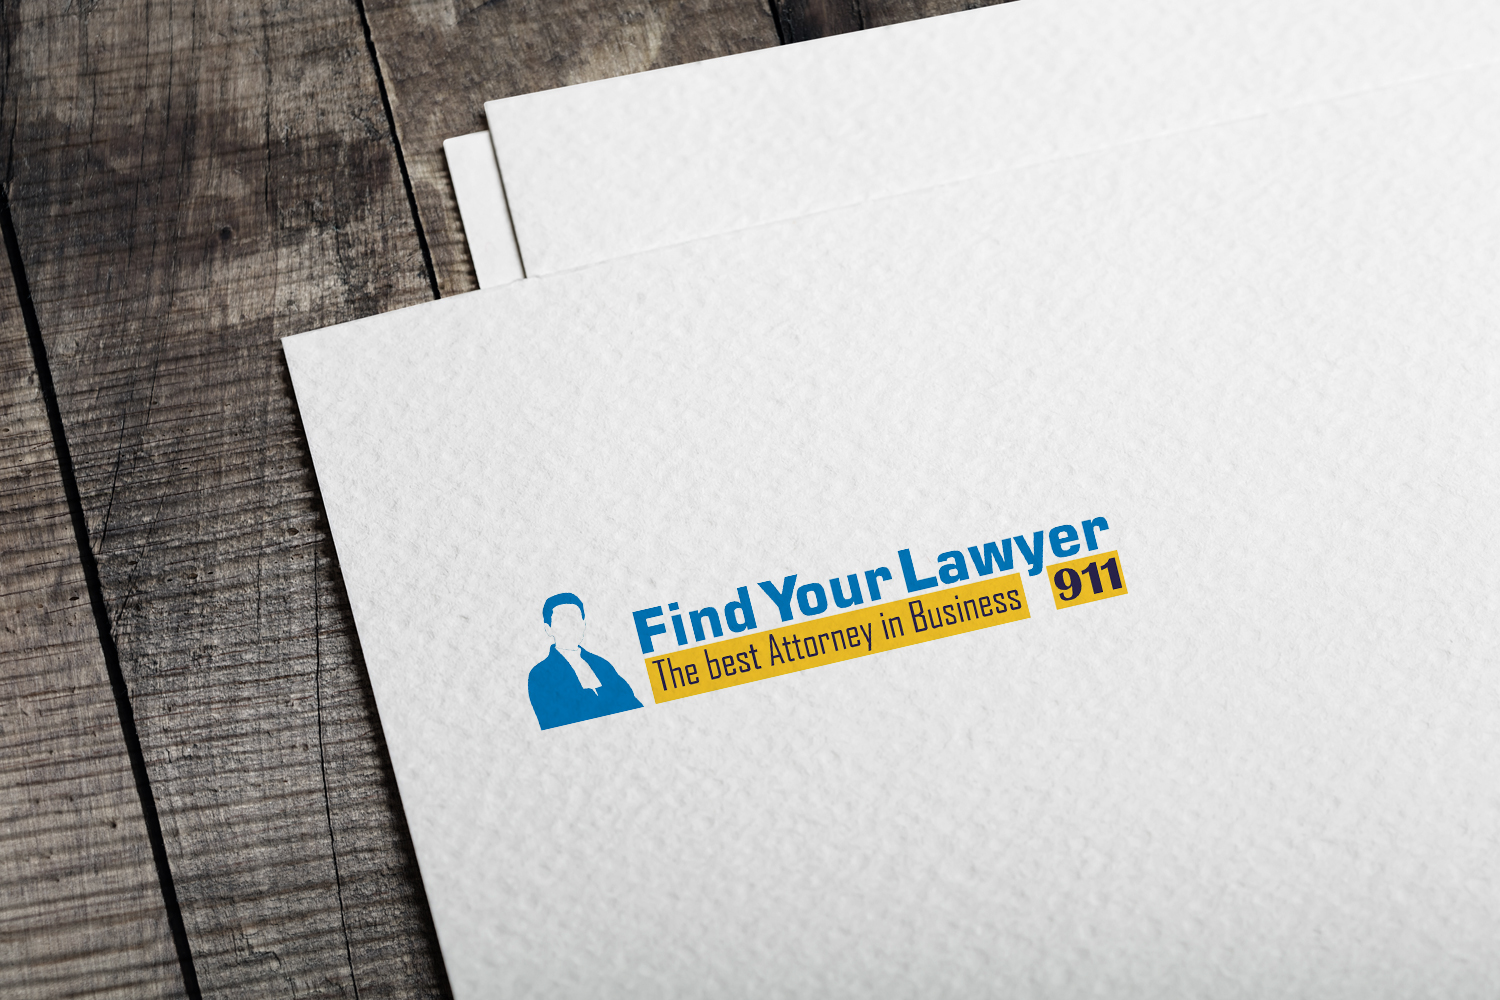 Find Your Lawyer 911 (Logo)